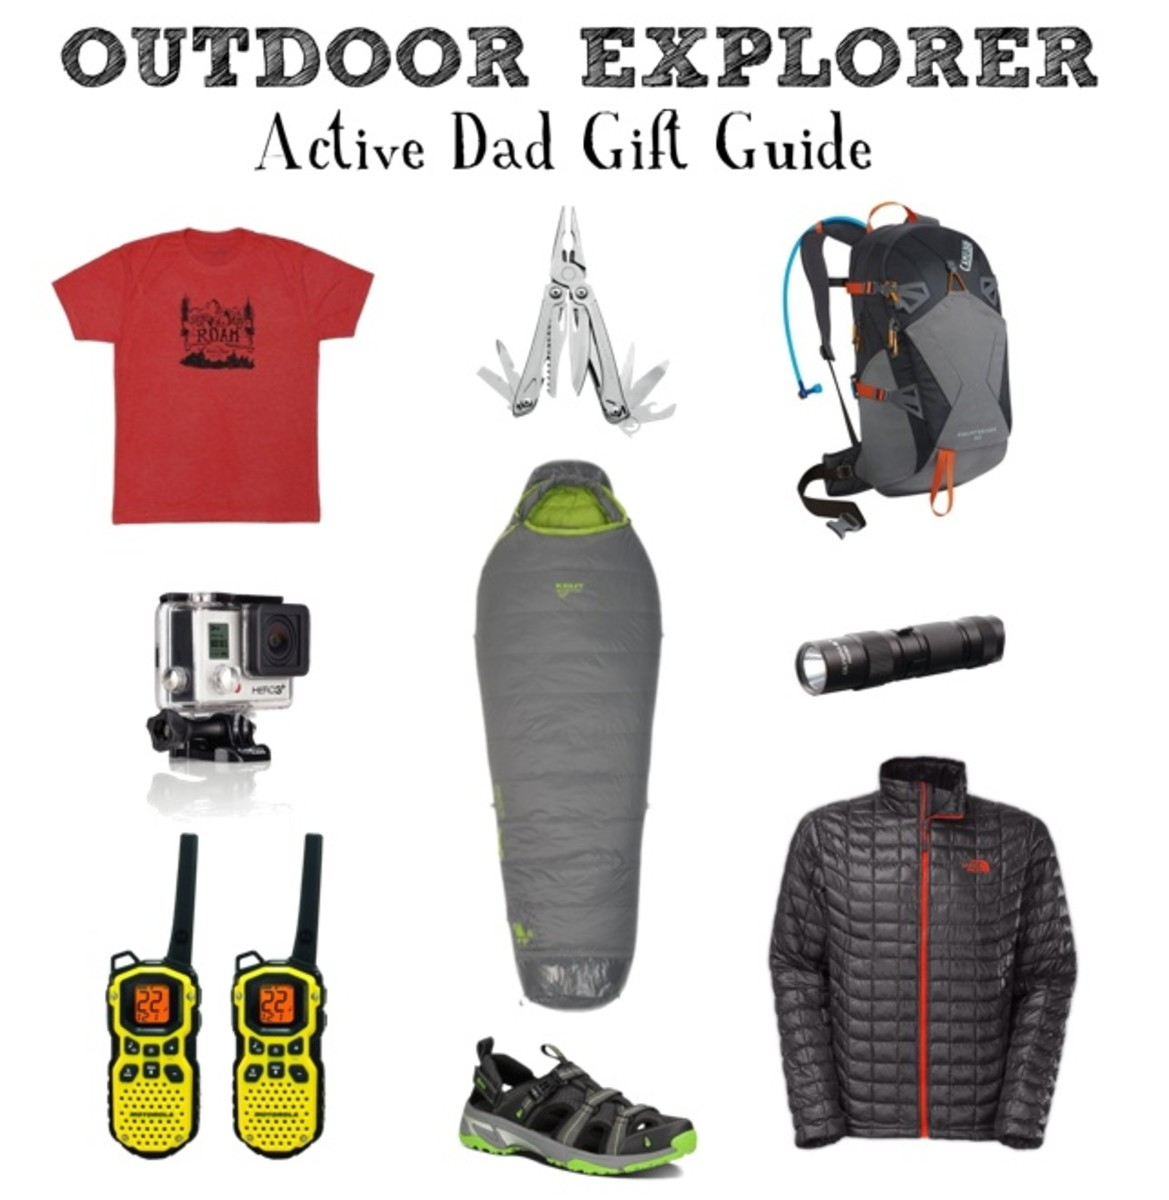 Gifts for the Active Dad